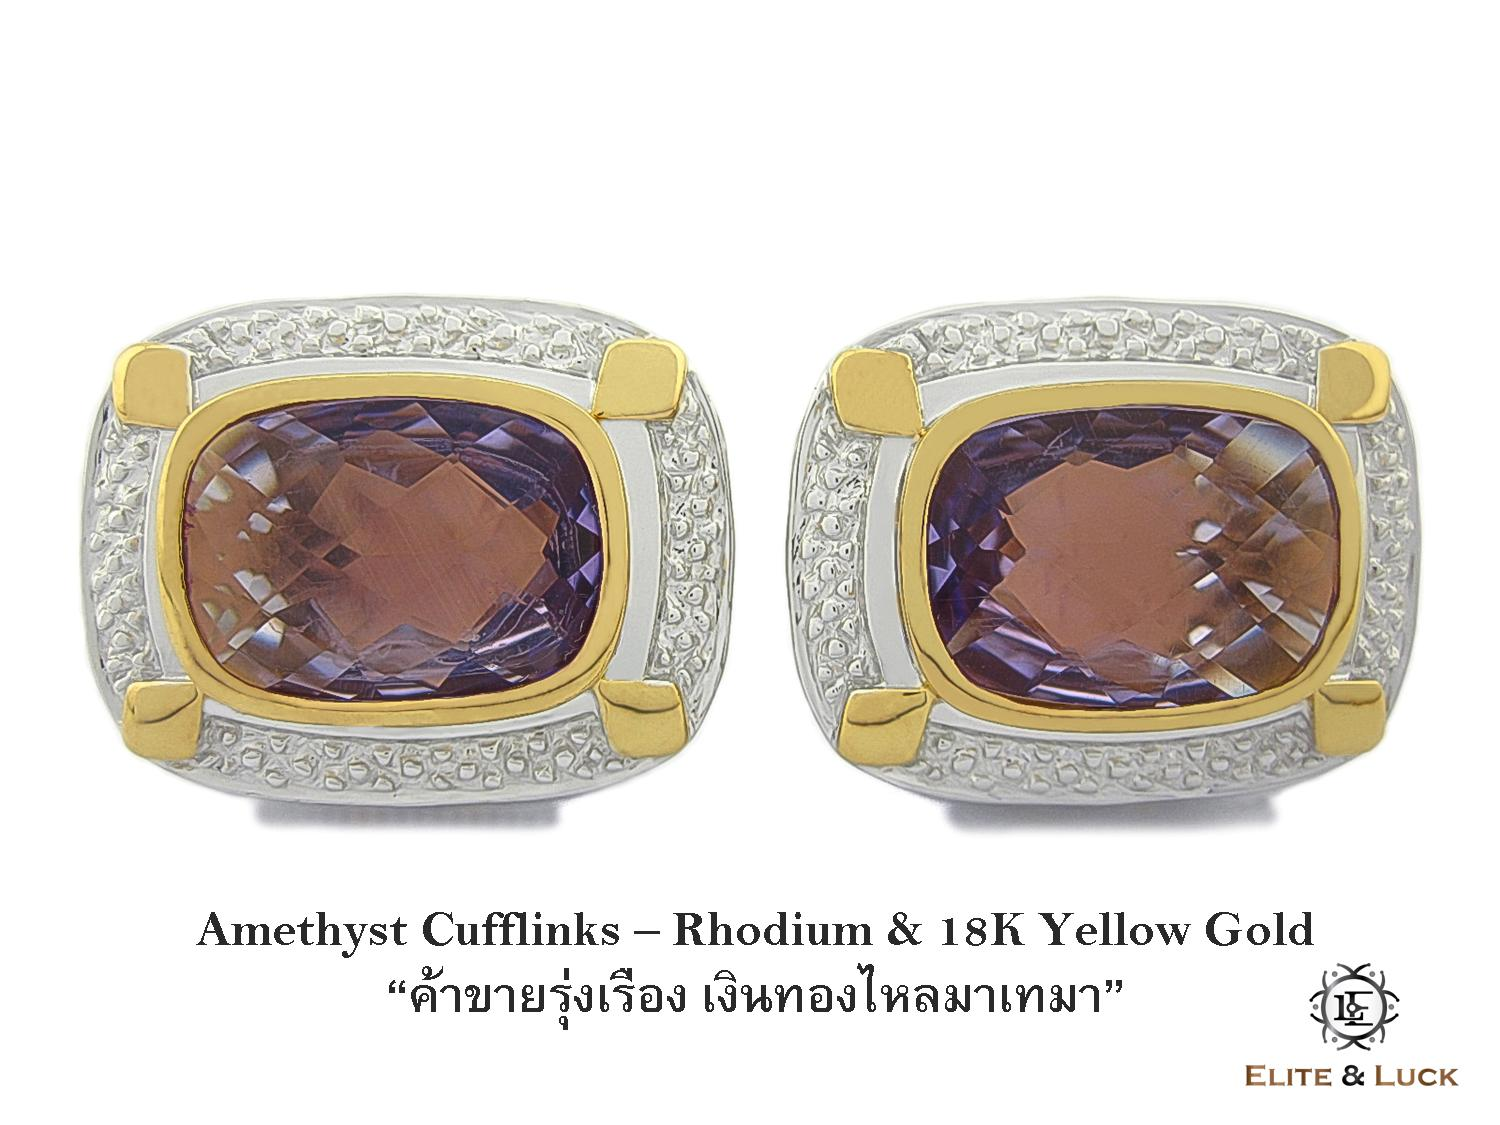 Amethyst Sterling Silver Cufflinks สี Rhodium & 18K Yellow Gold รุ่น Luxury